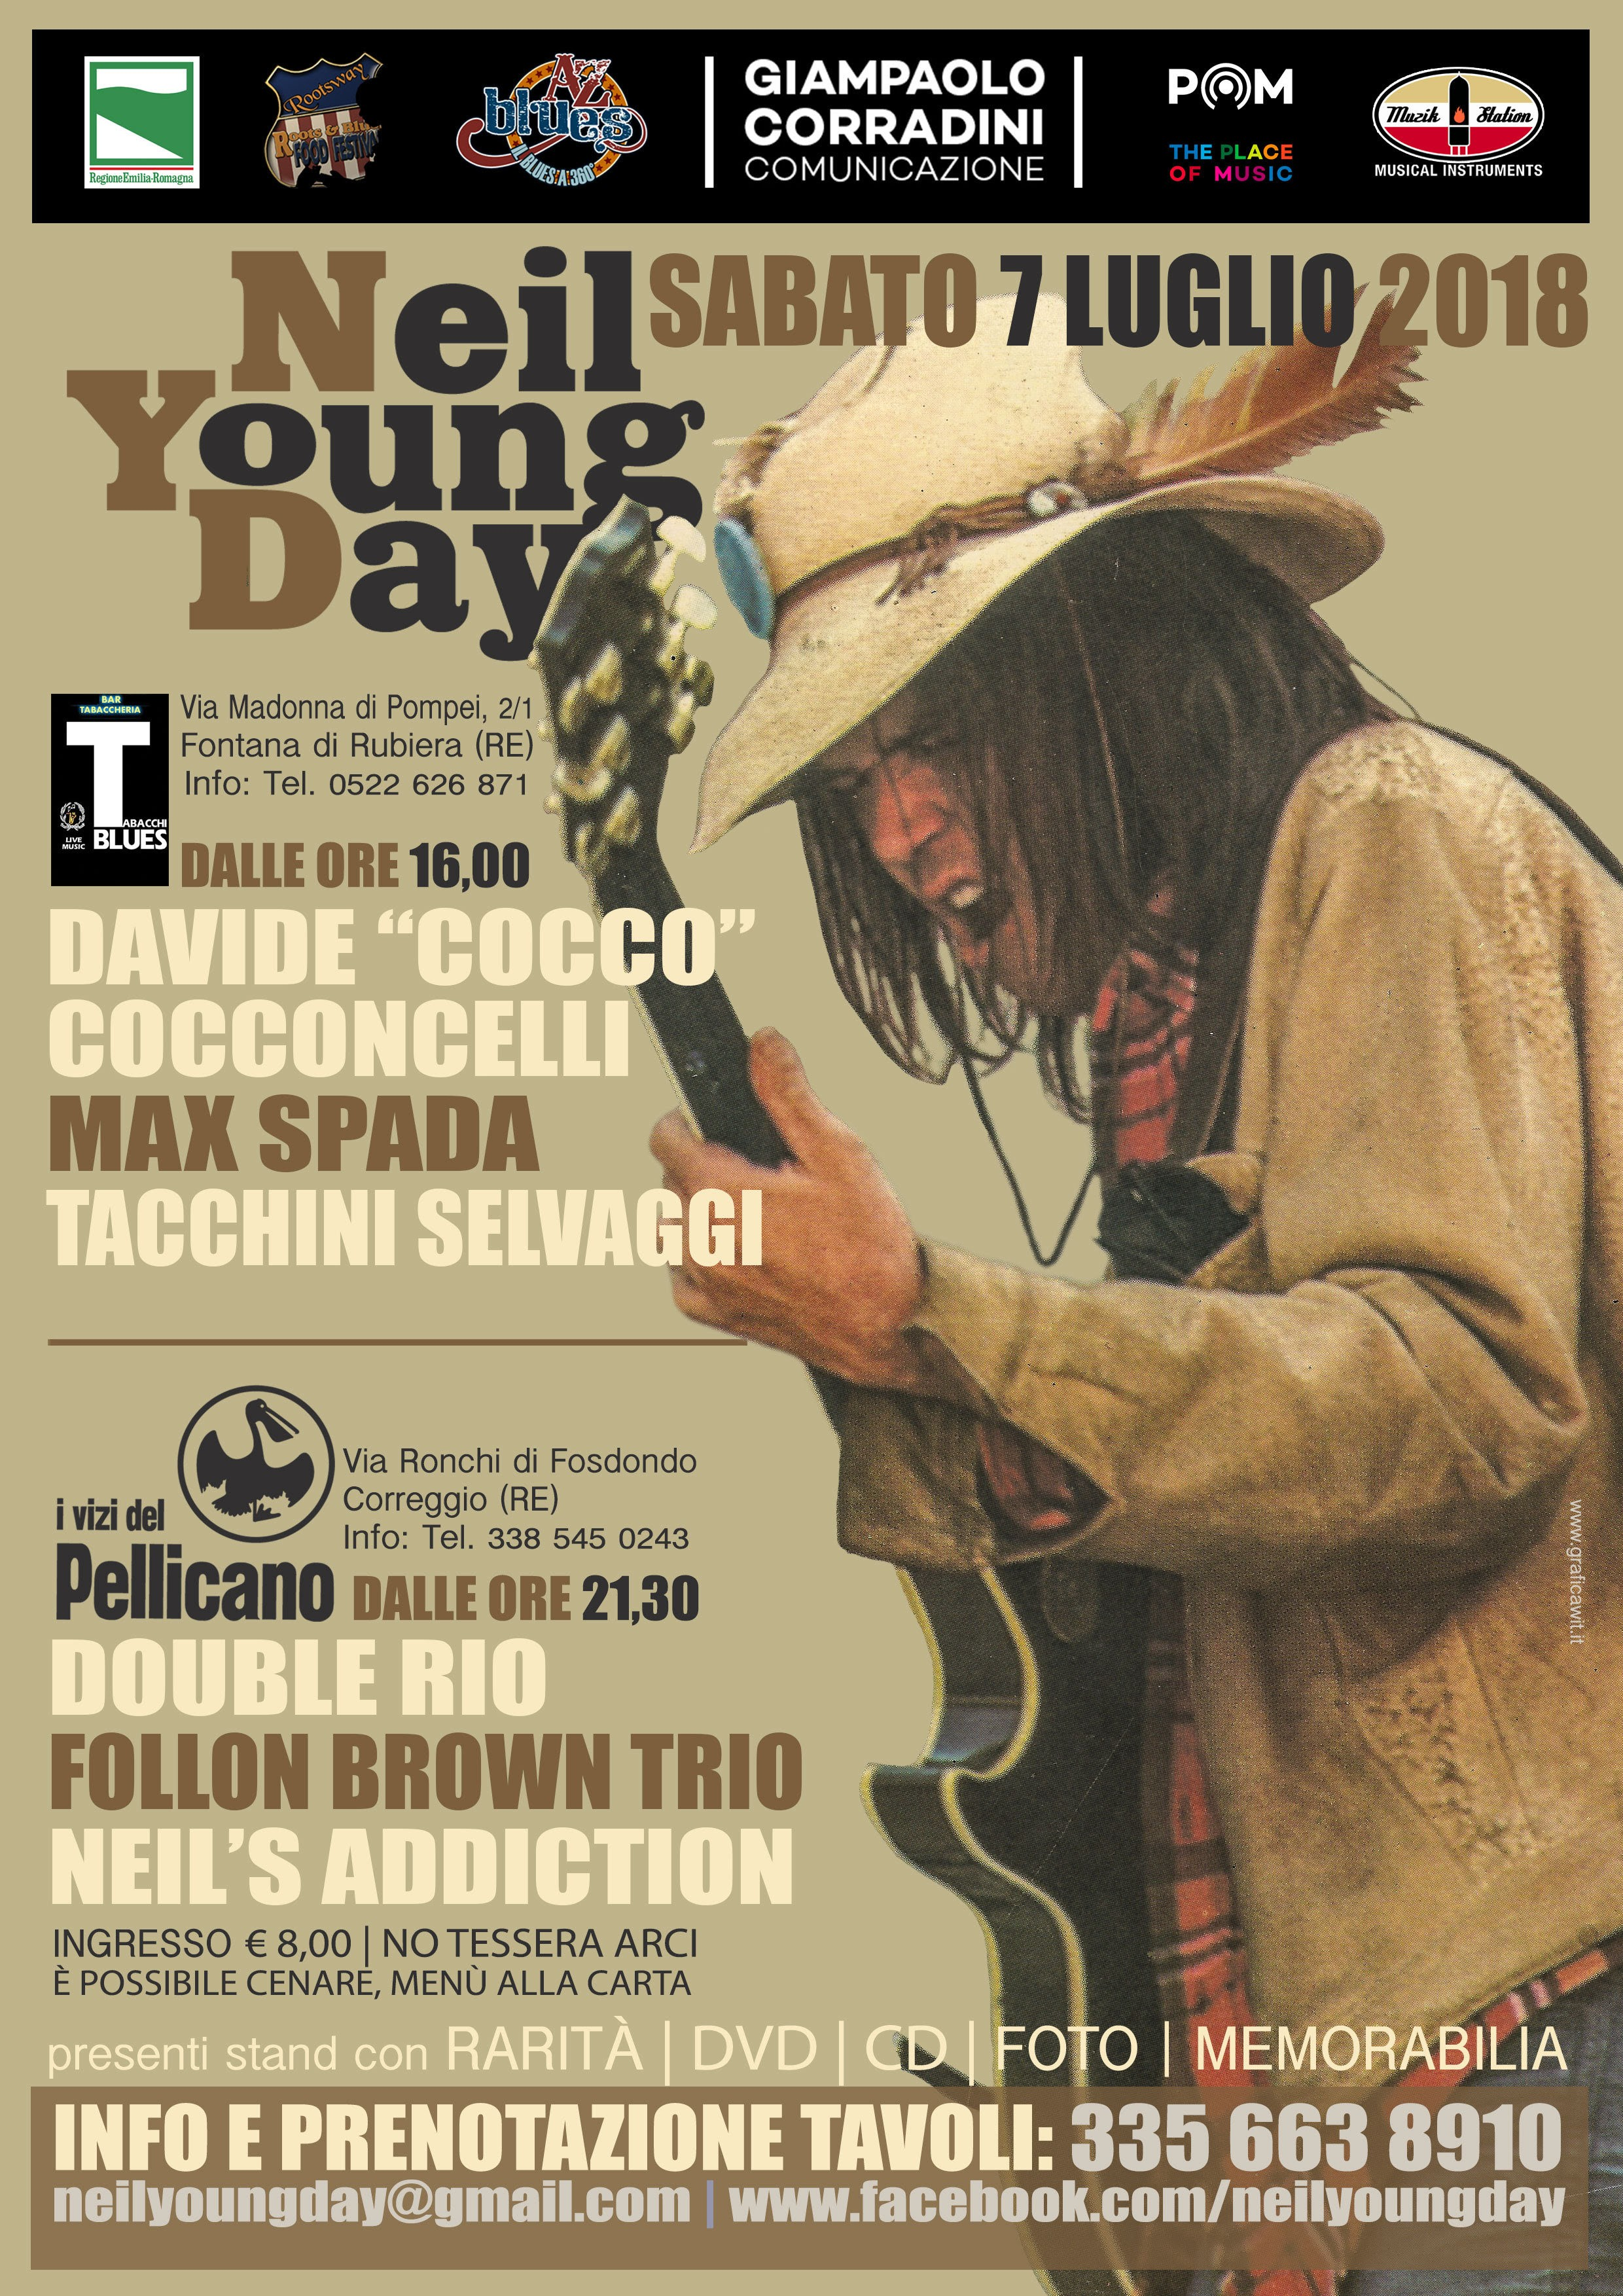 Neil Young Day